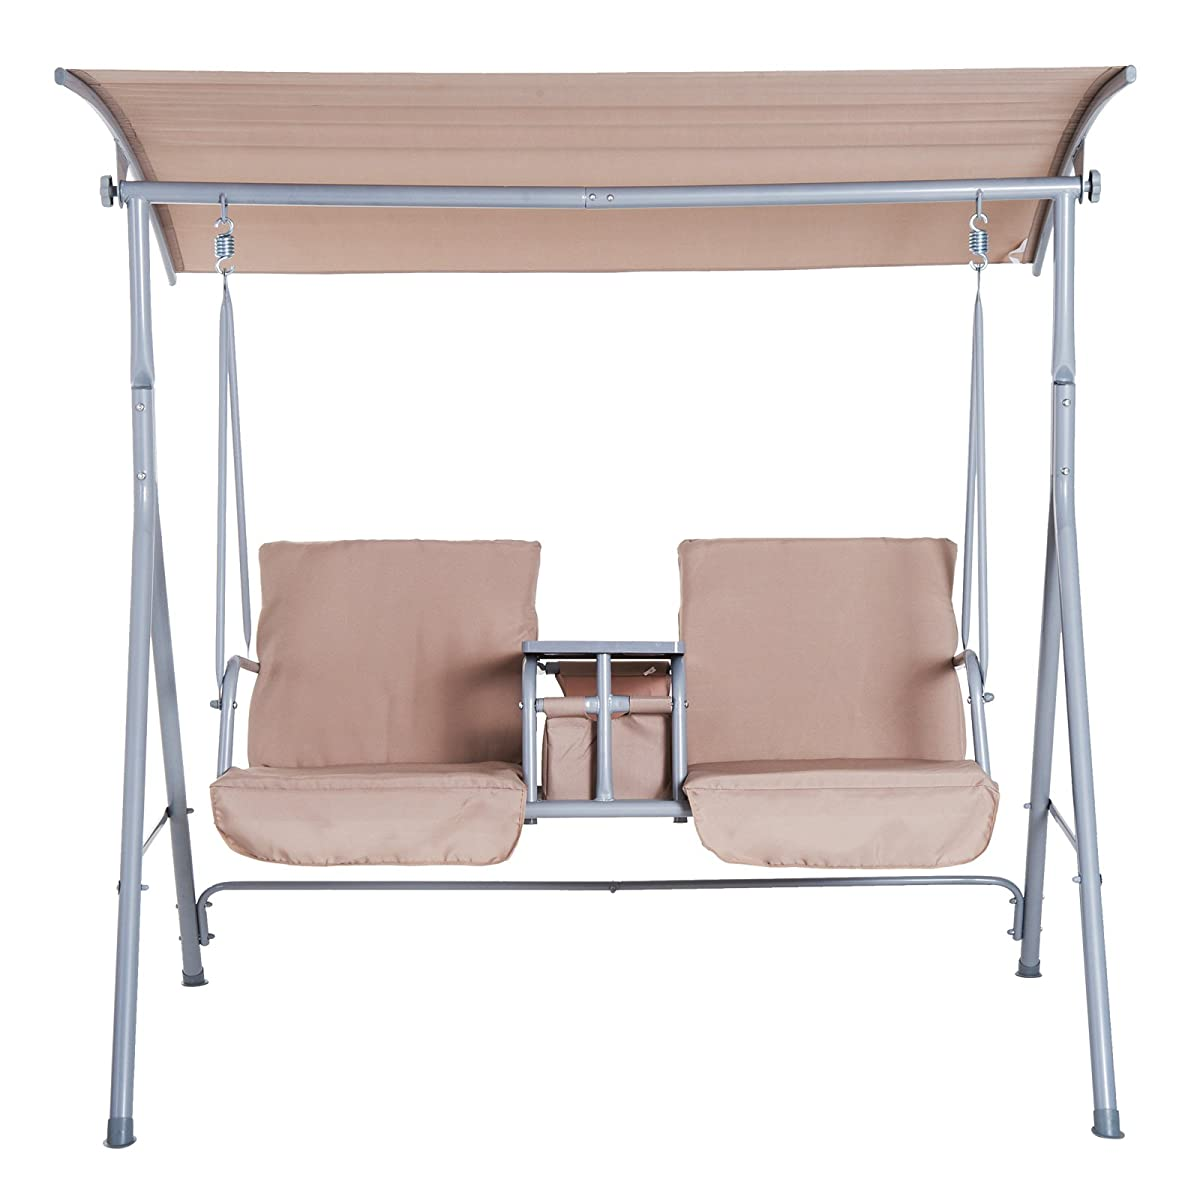 Outsunny 2 Person Covered Patio Swing with Pivot Table & Storage Console - Beige